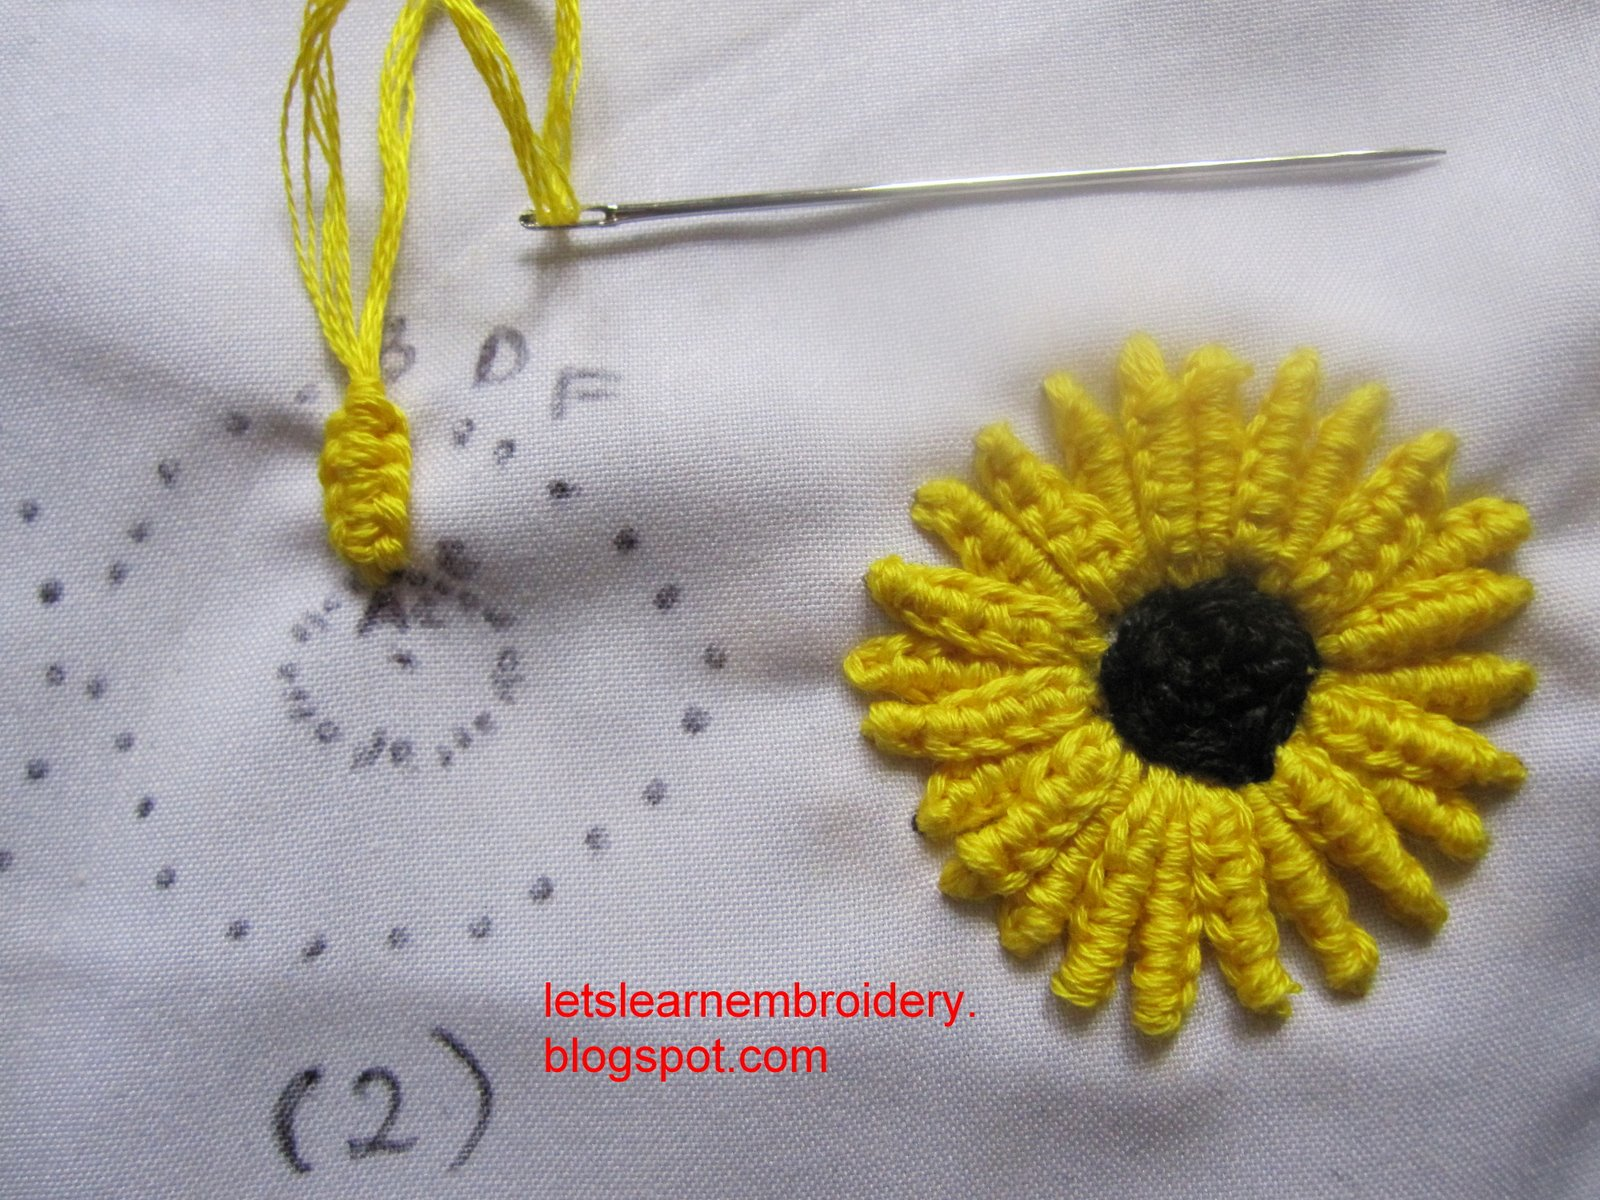 Let s learn embroidery october